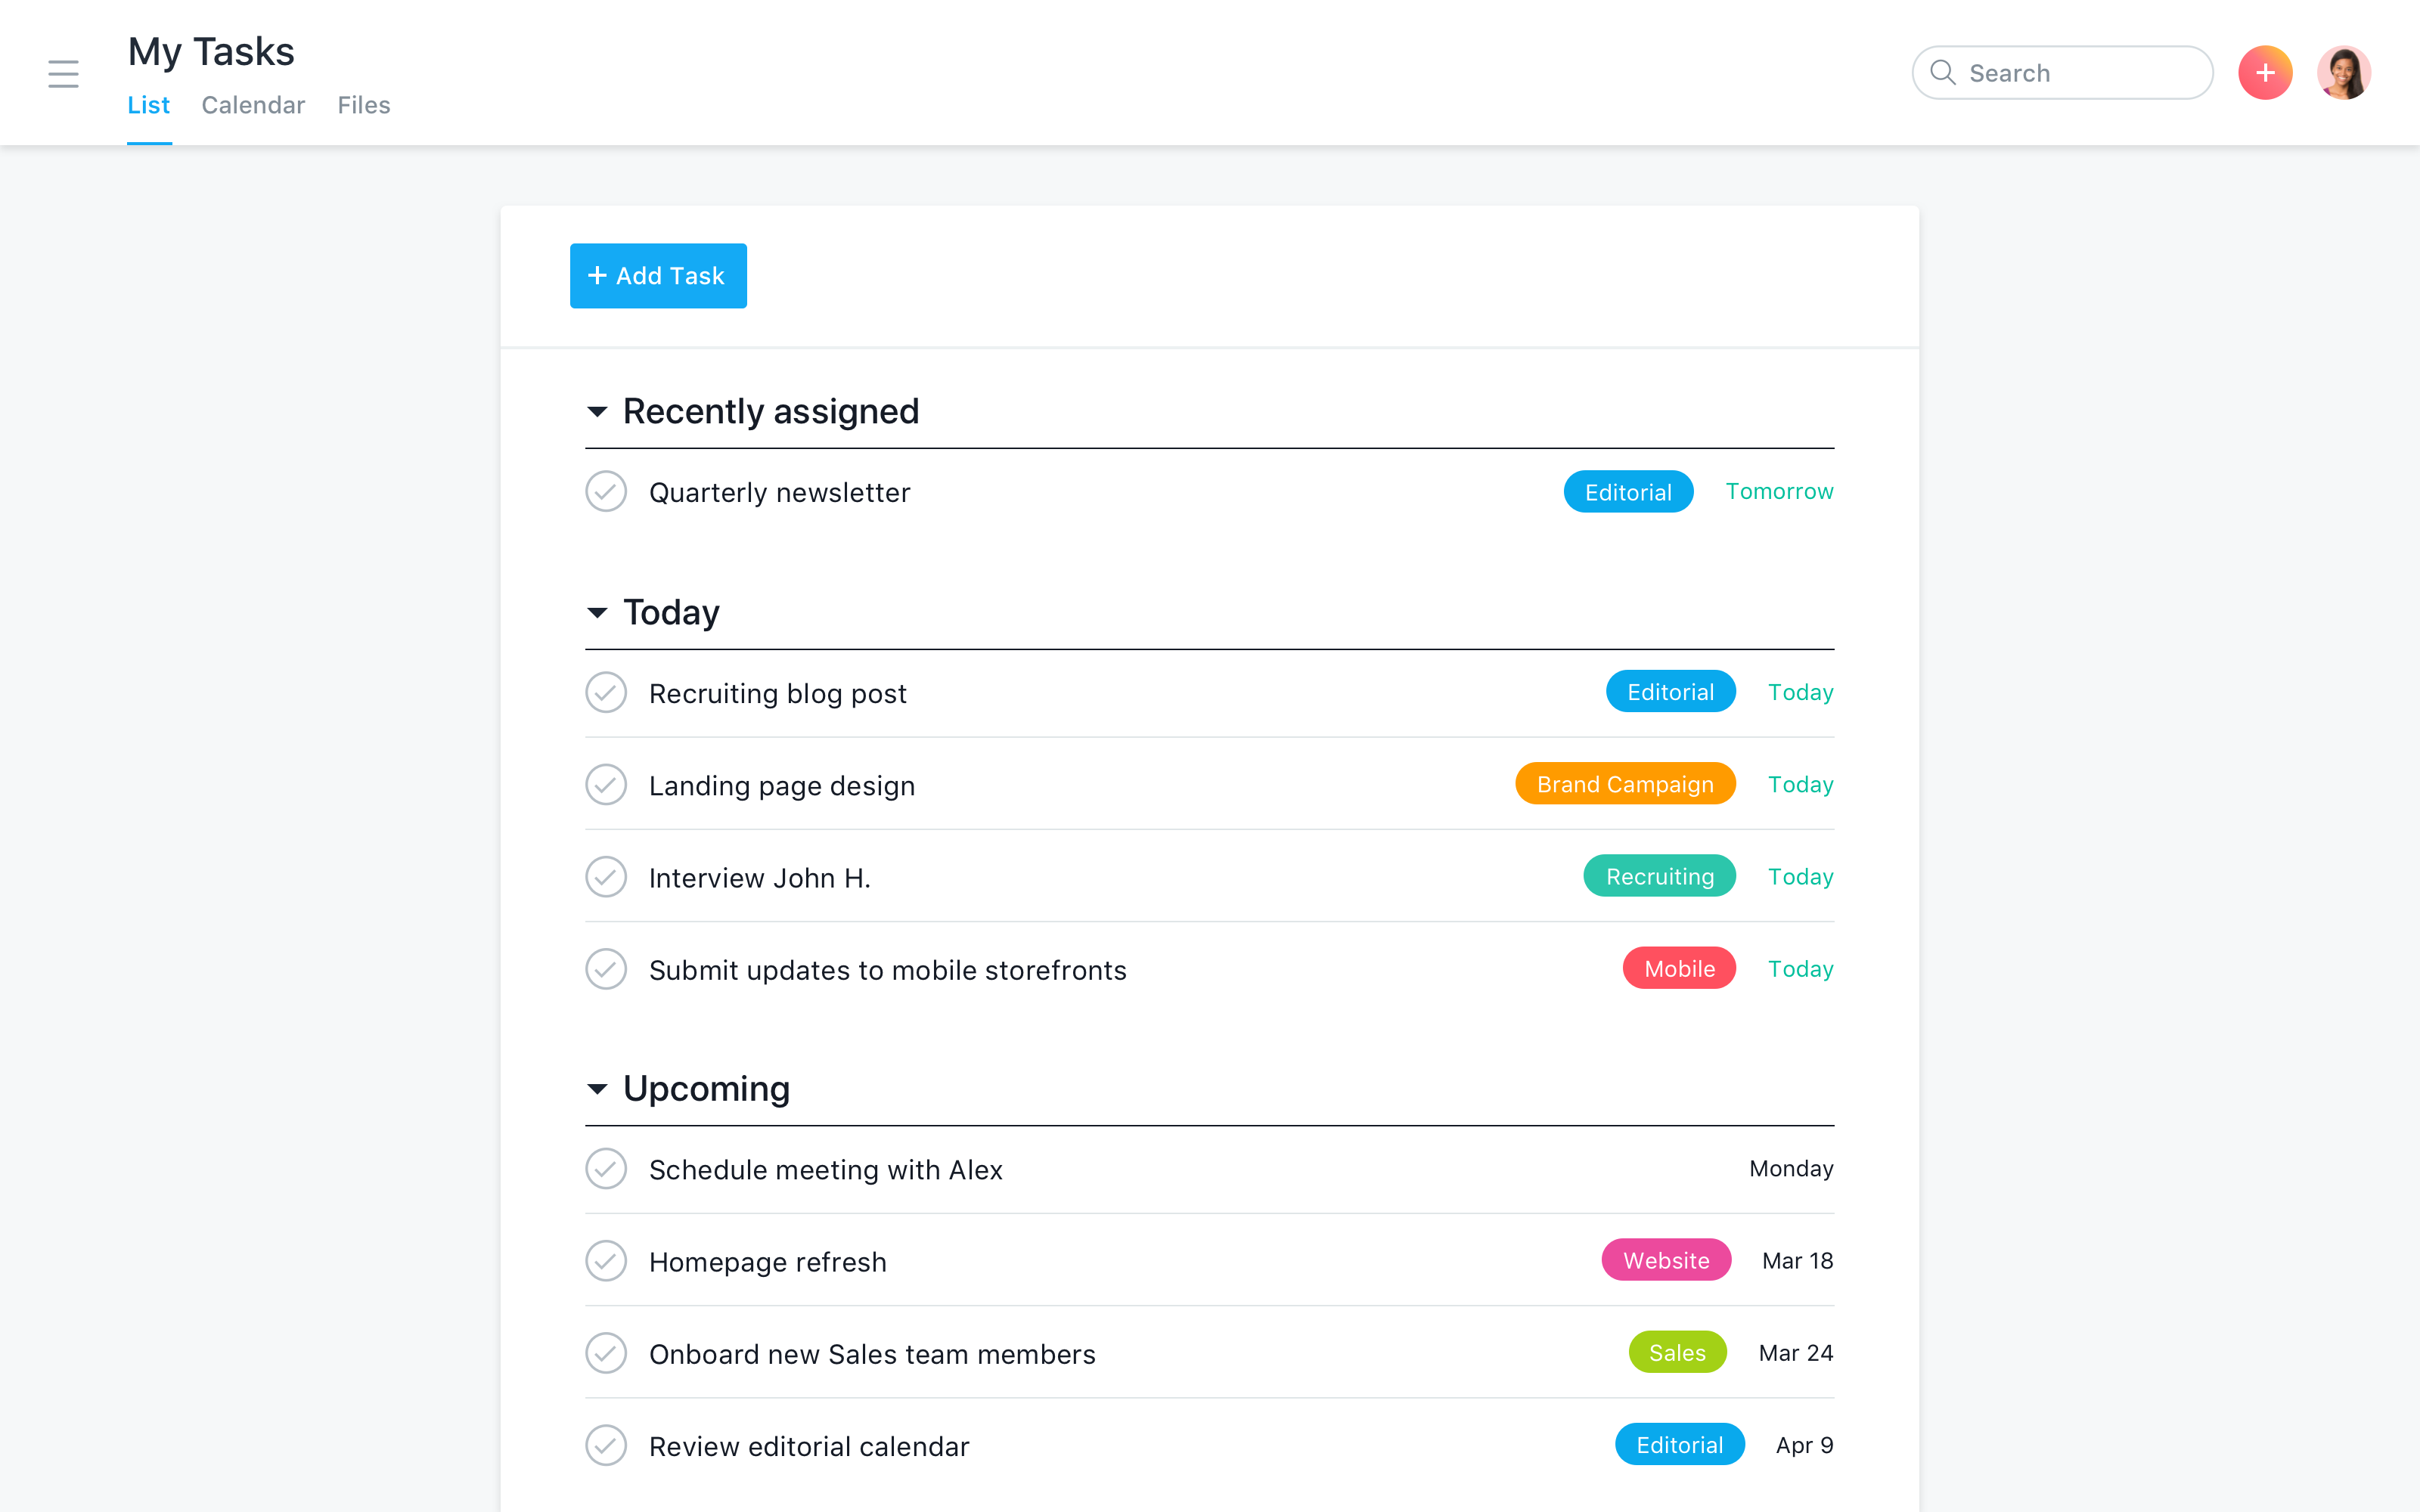 Create customizable to-do lists to prioritize and organize work in your My Tasks.